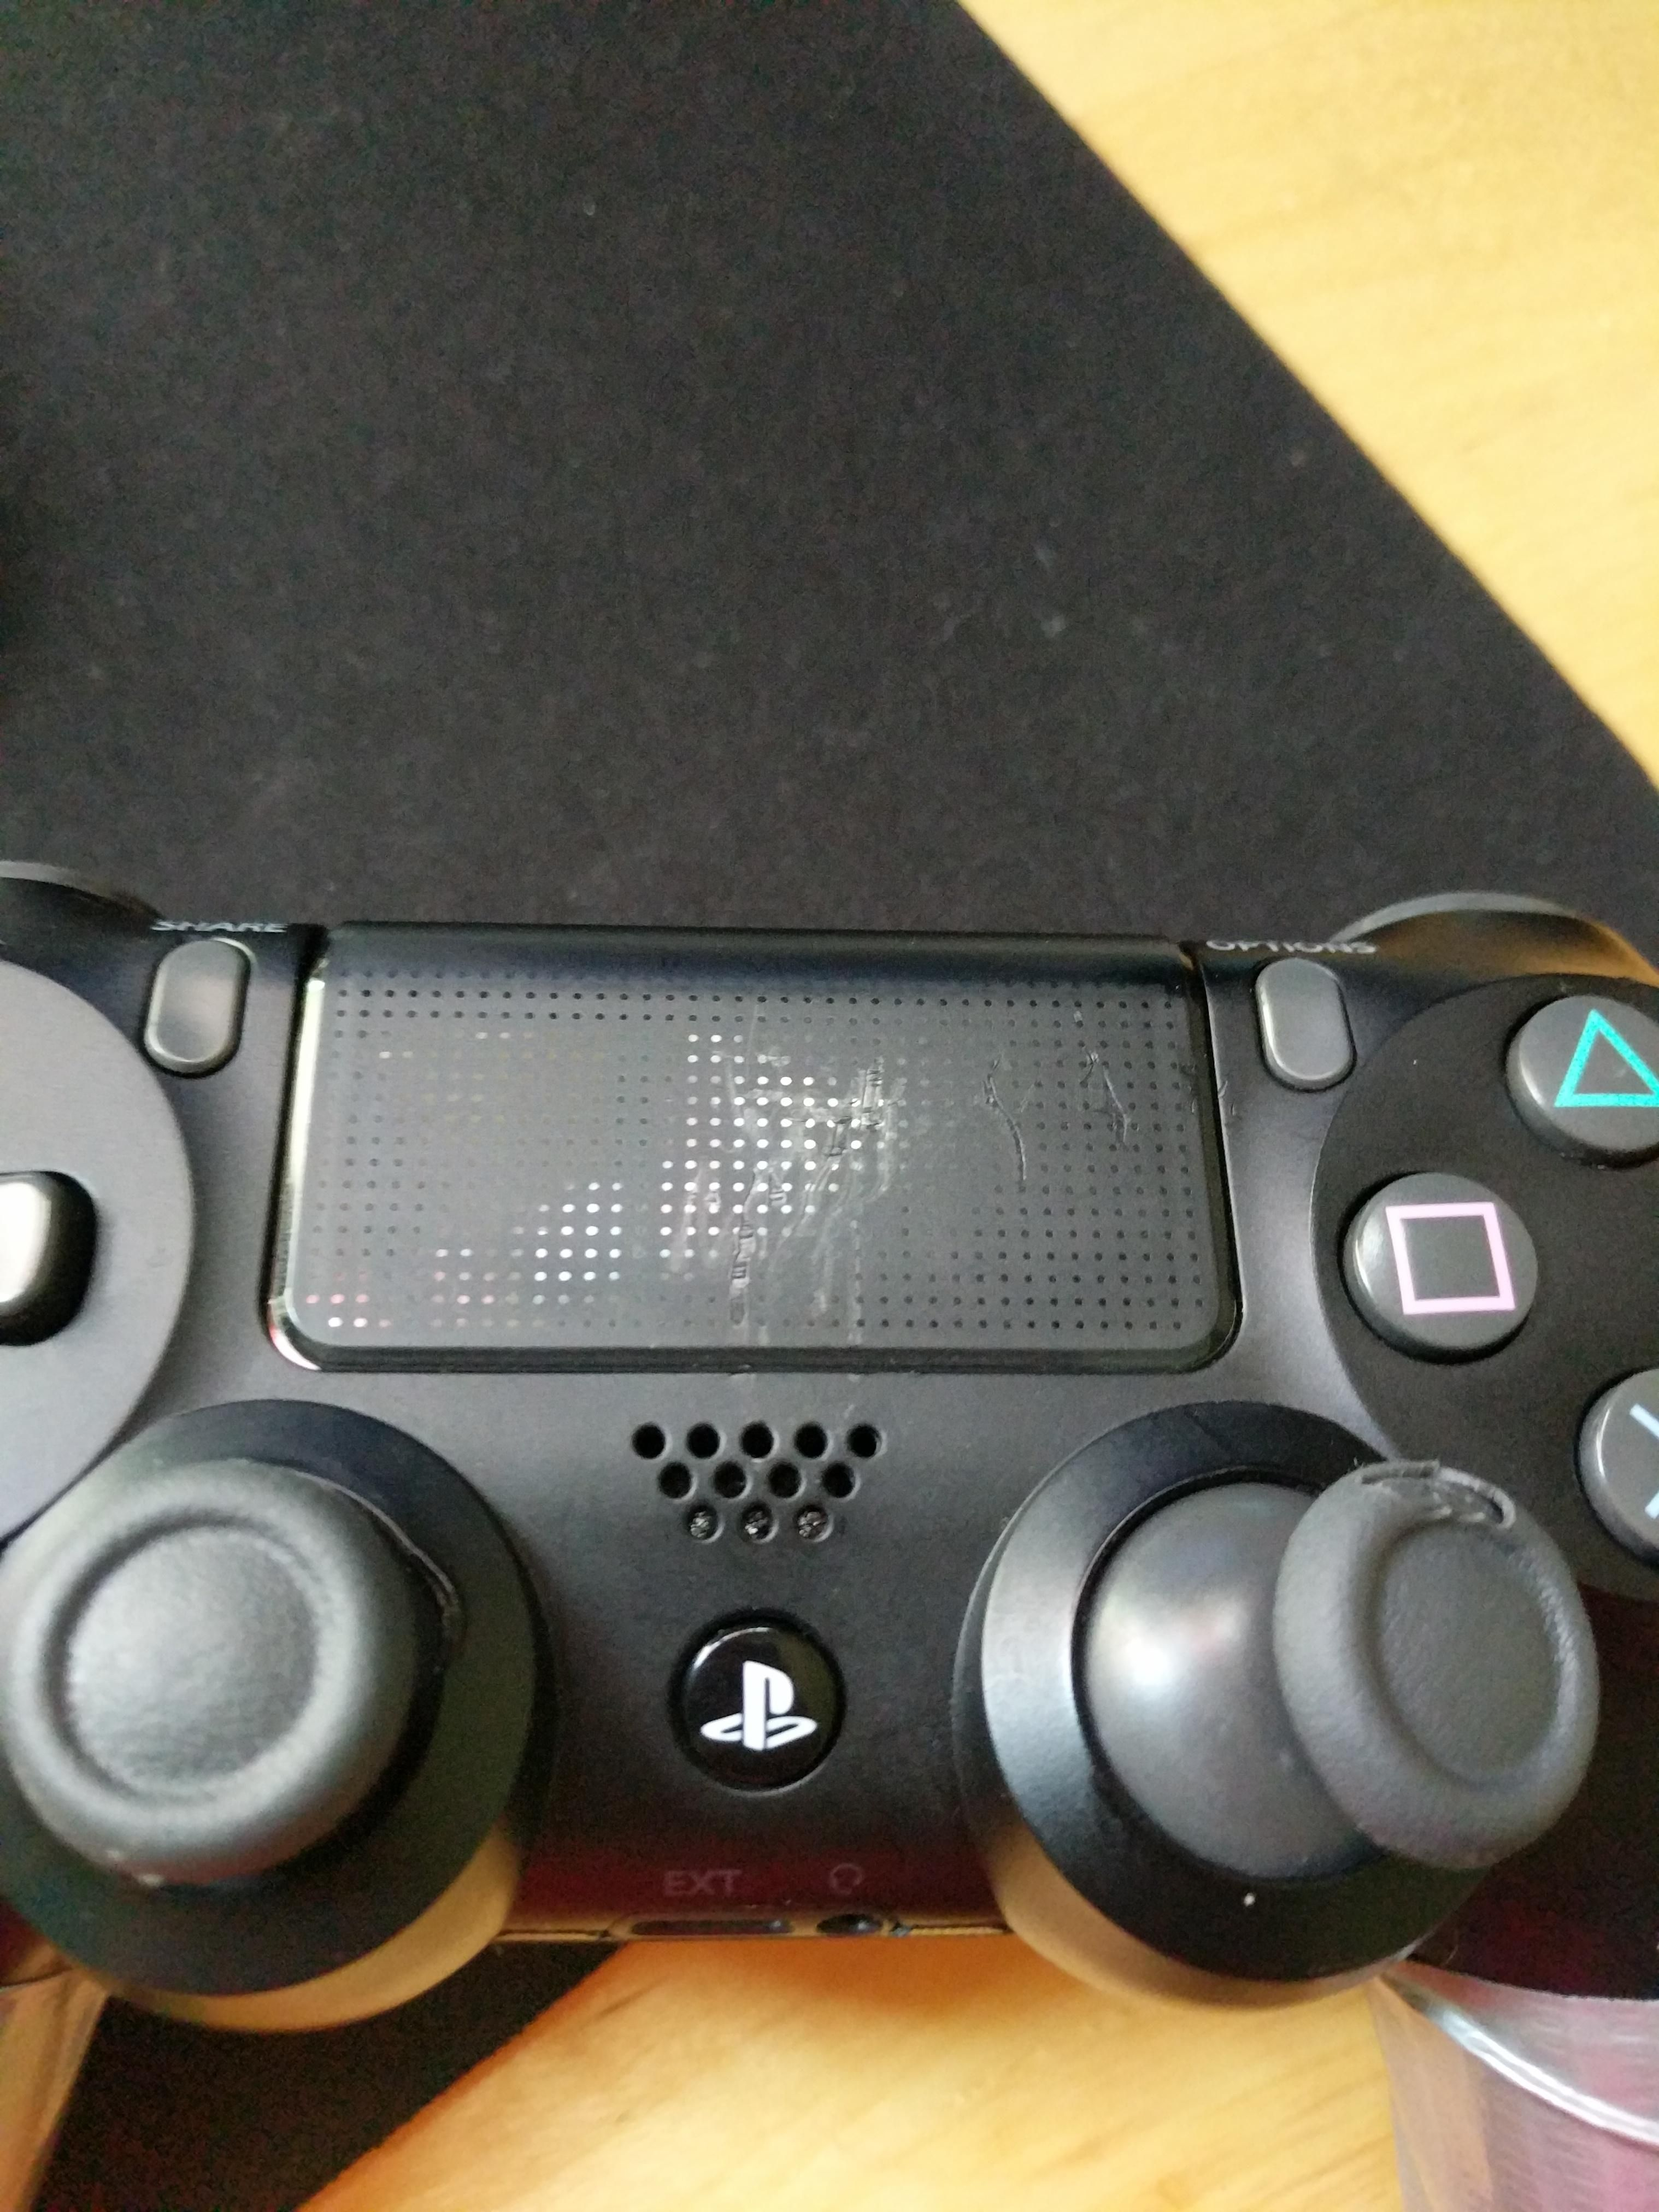 IMAGE] Anyway to fix this right analog stick for free